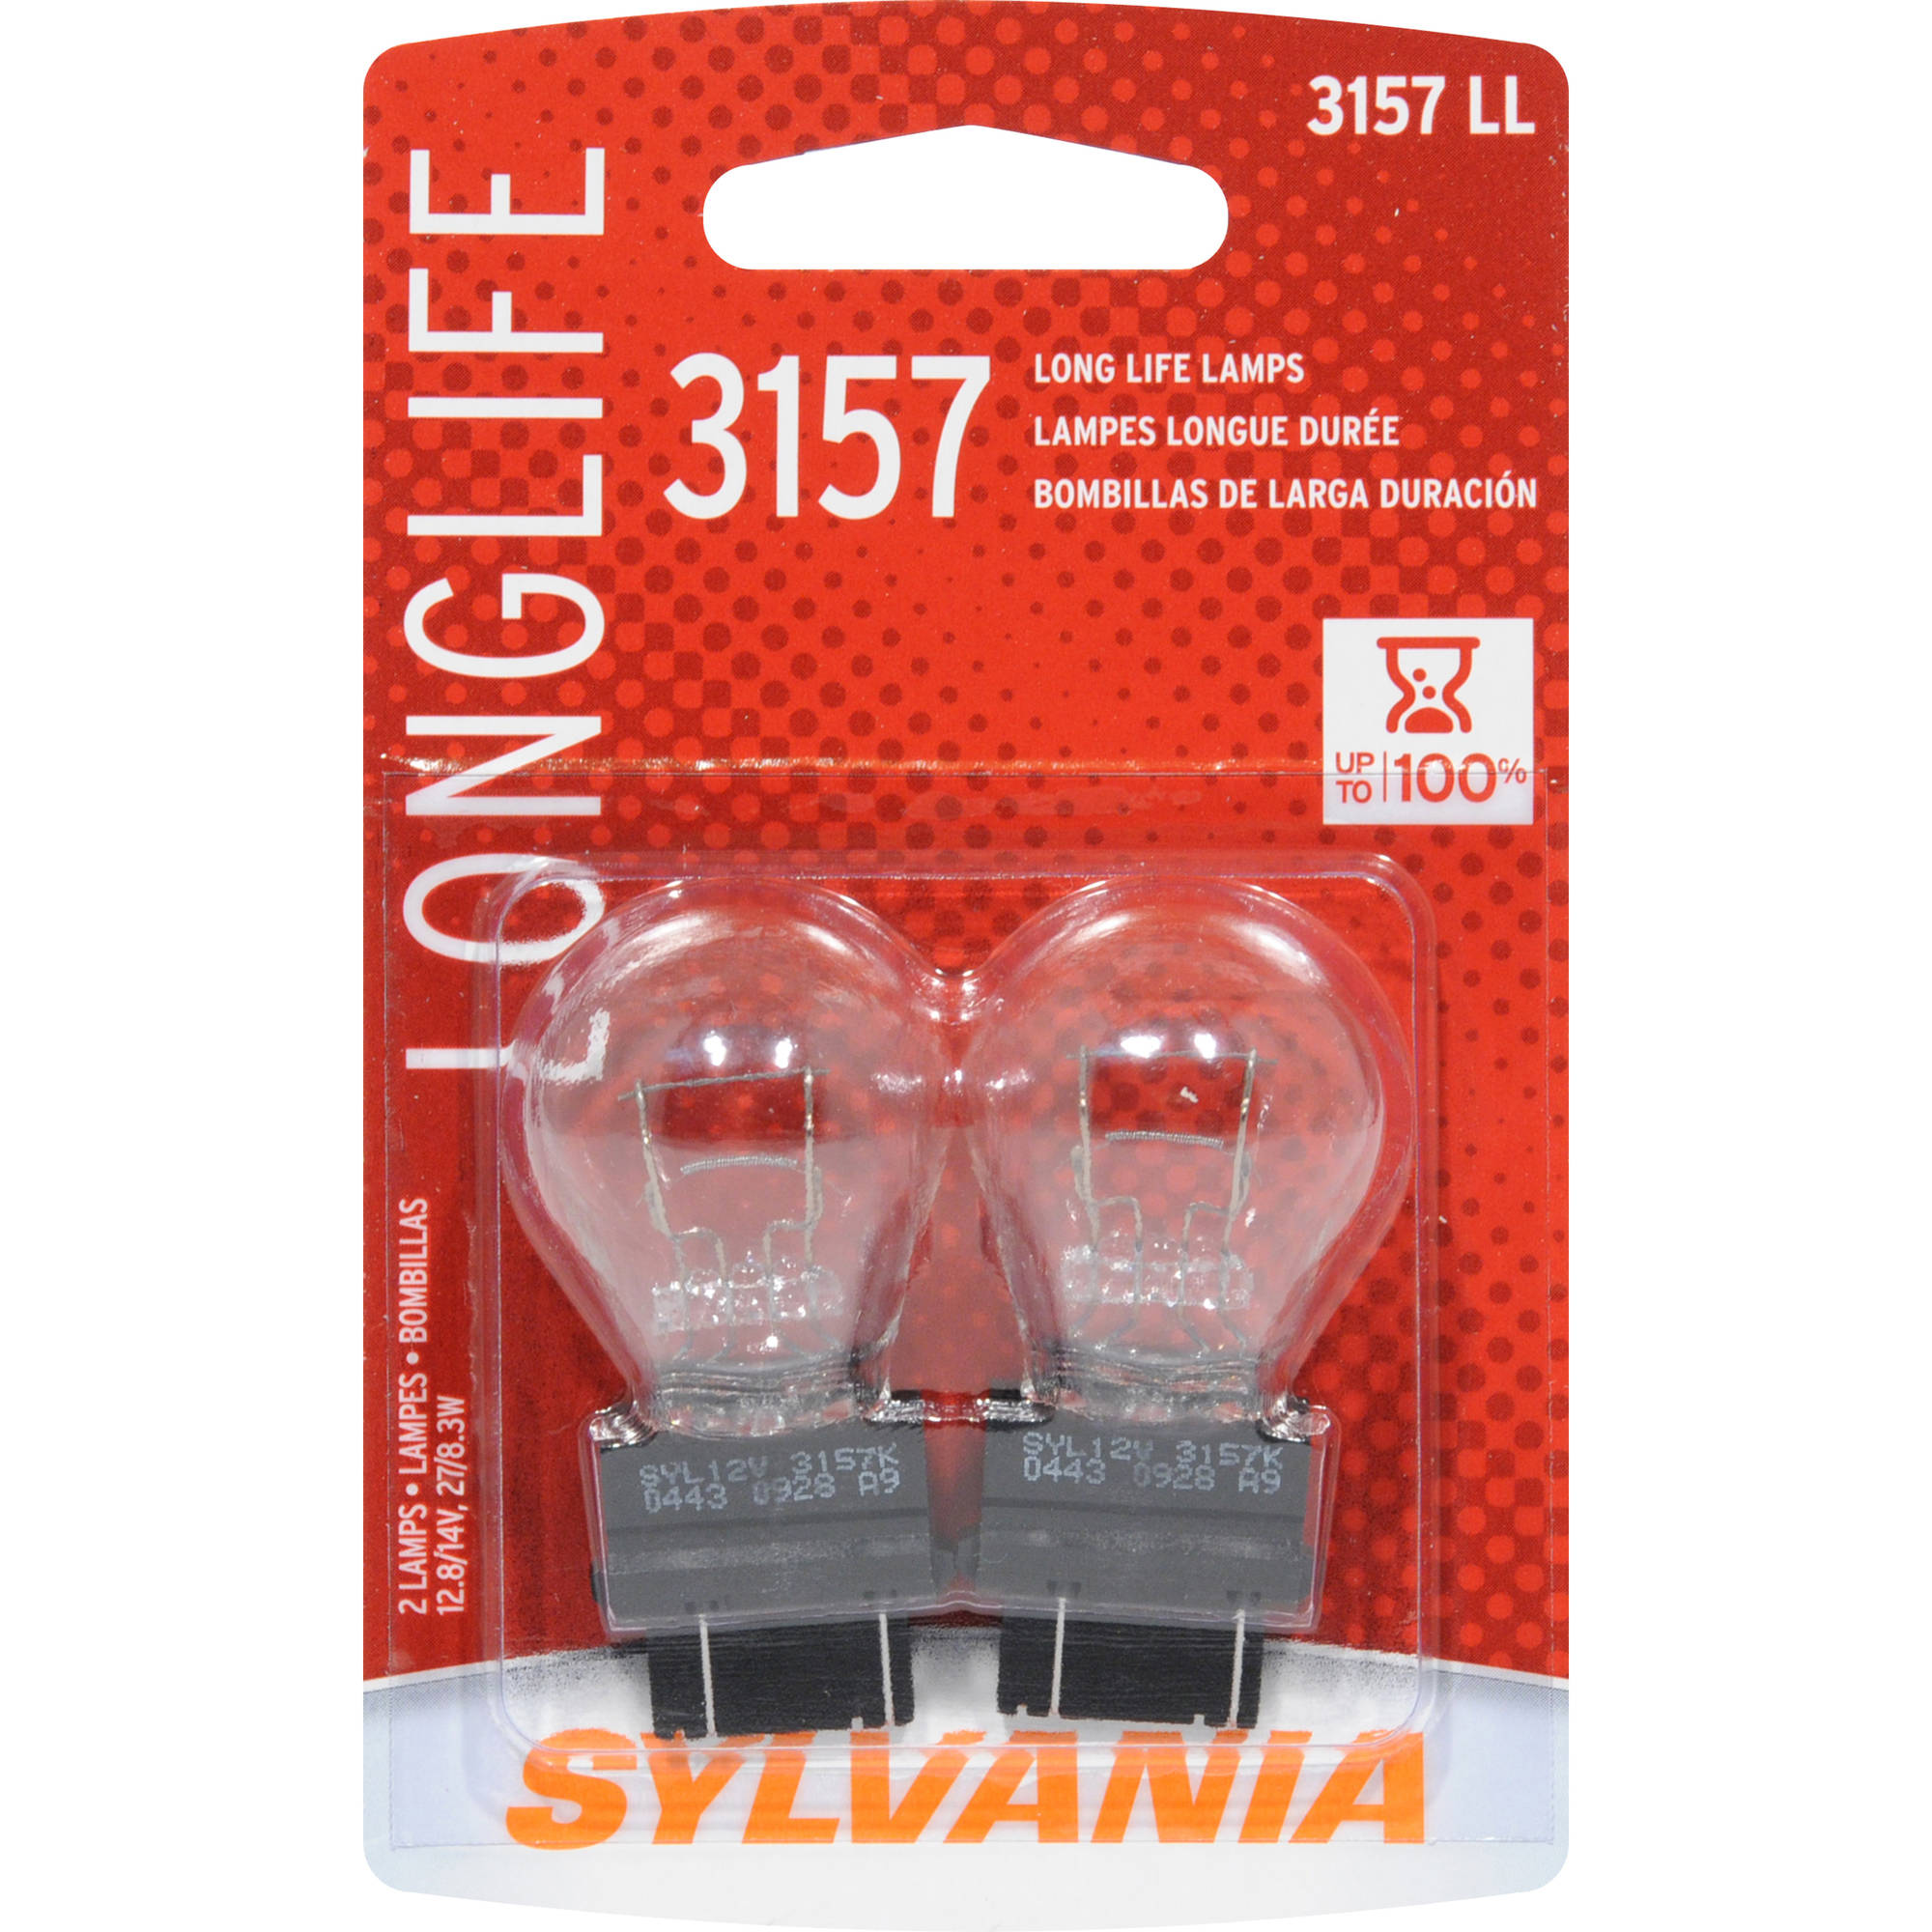 2-PK SYLVANIA 3157 P27/7W Long Life Automotive Light Bulb